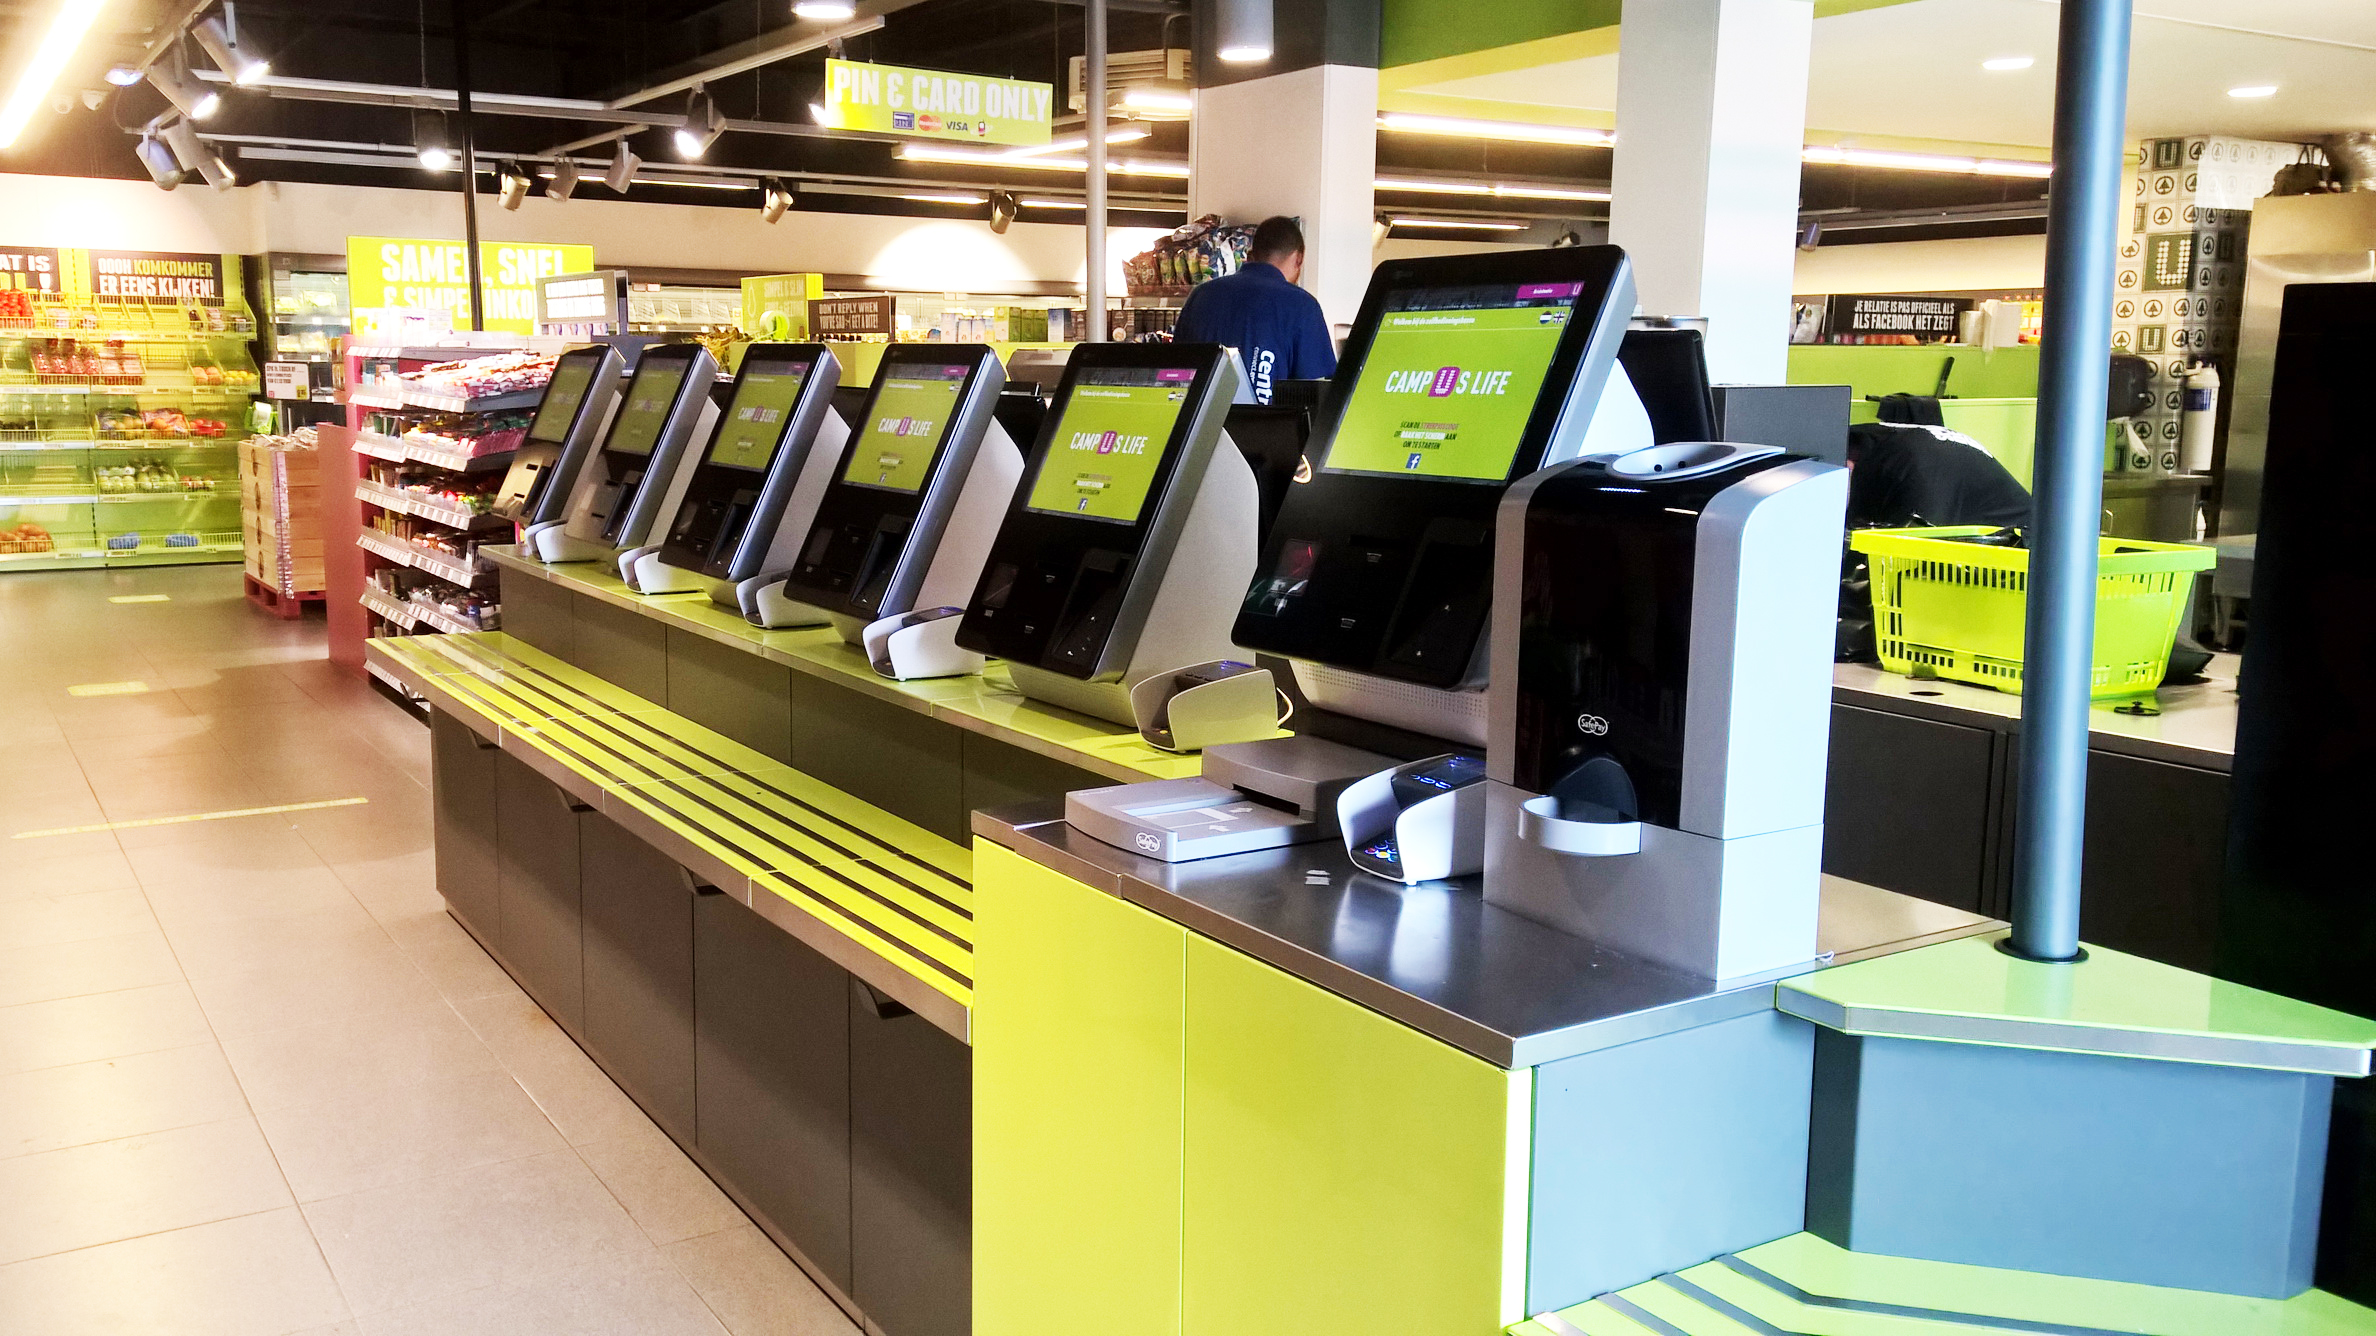 self-checkouts, self-service payment stations